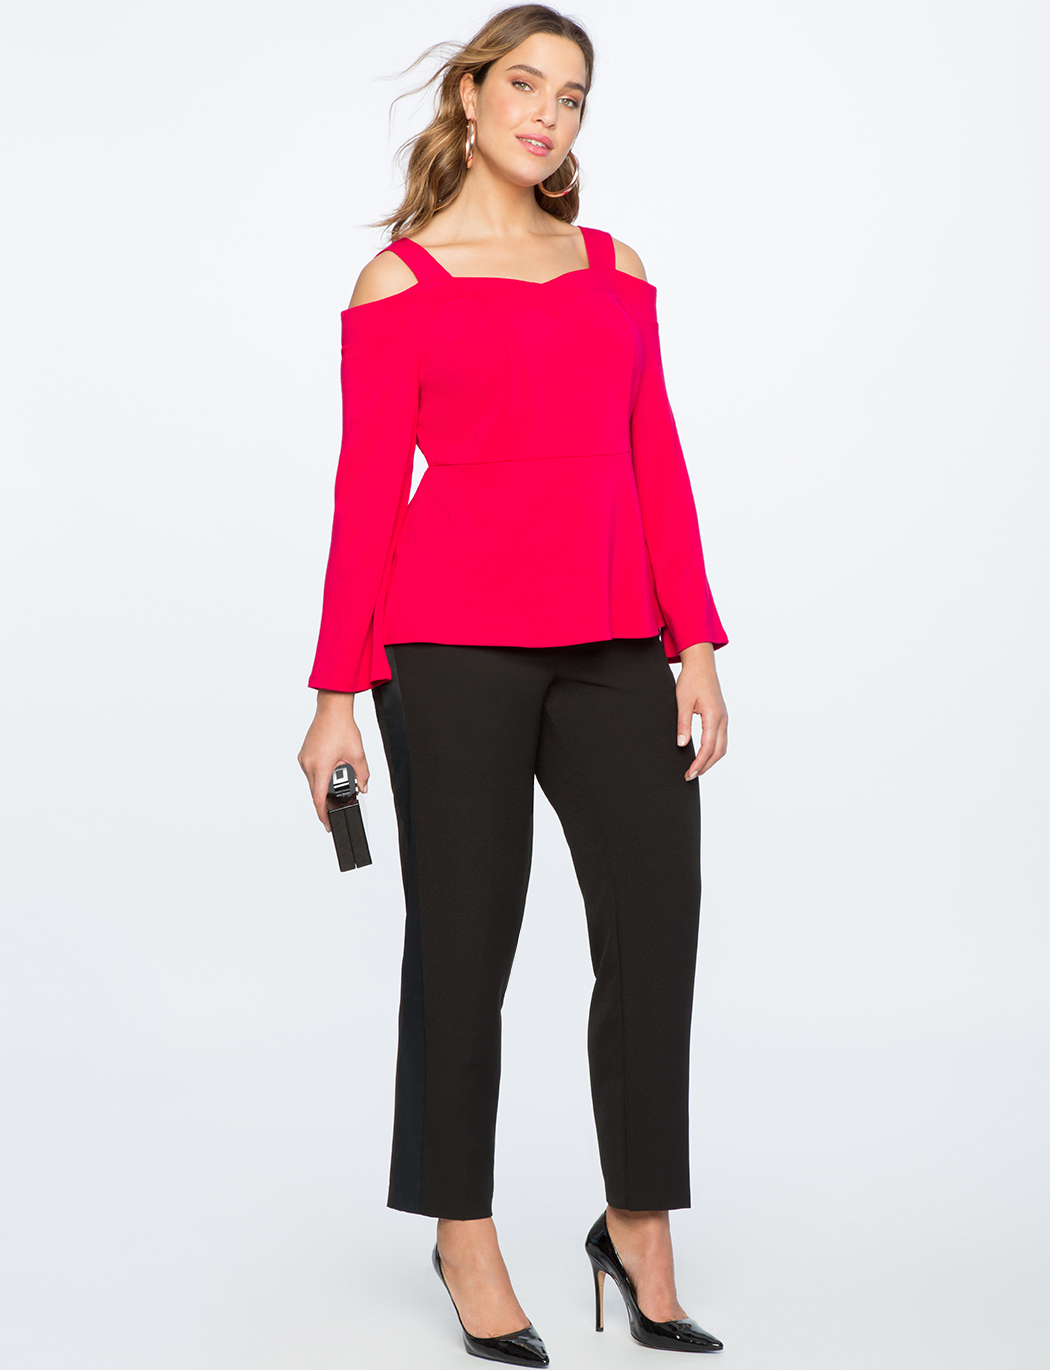 Cold Shoulder Sweetheart Neckline Top